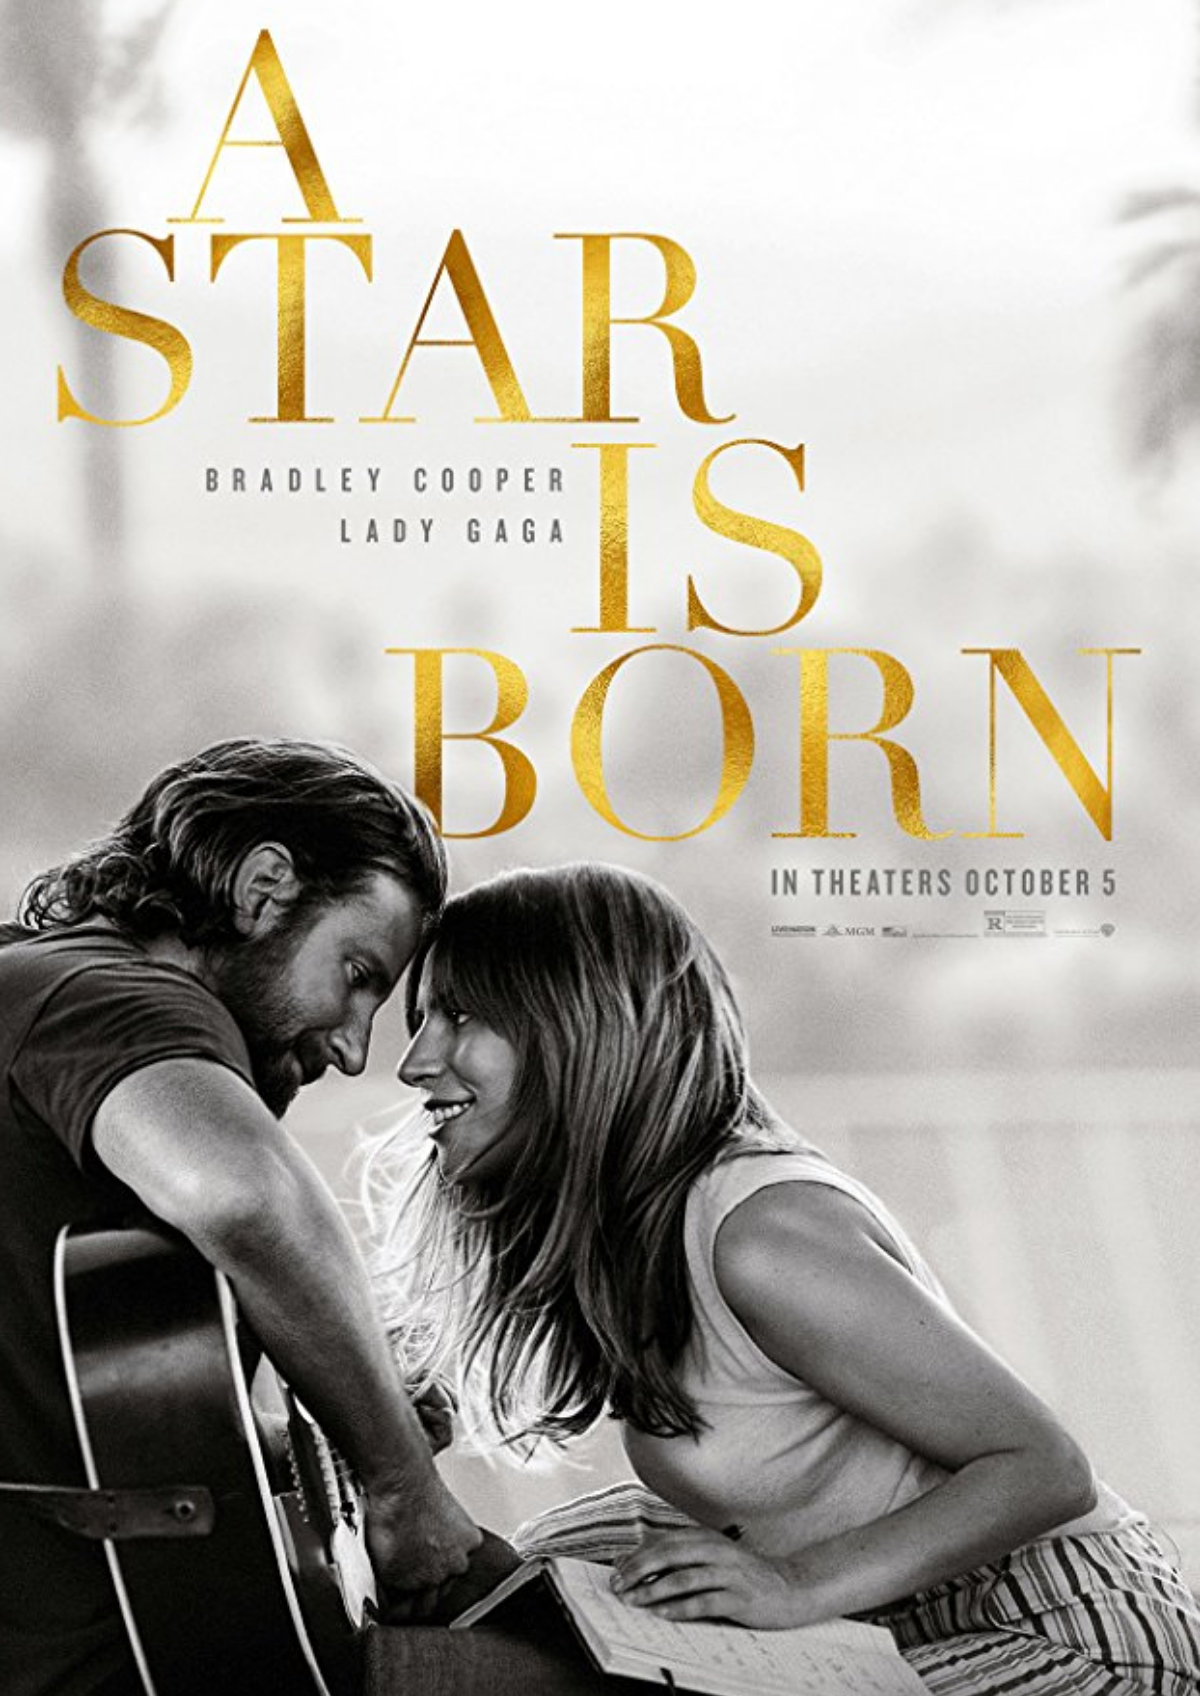 'A Star Is Born' movie poster